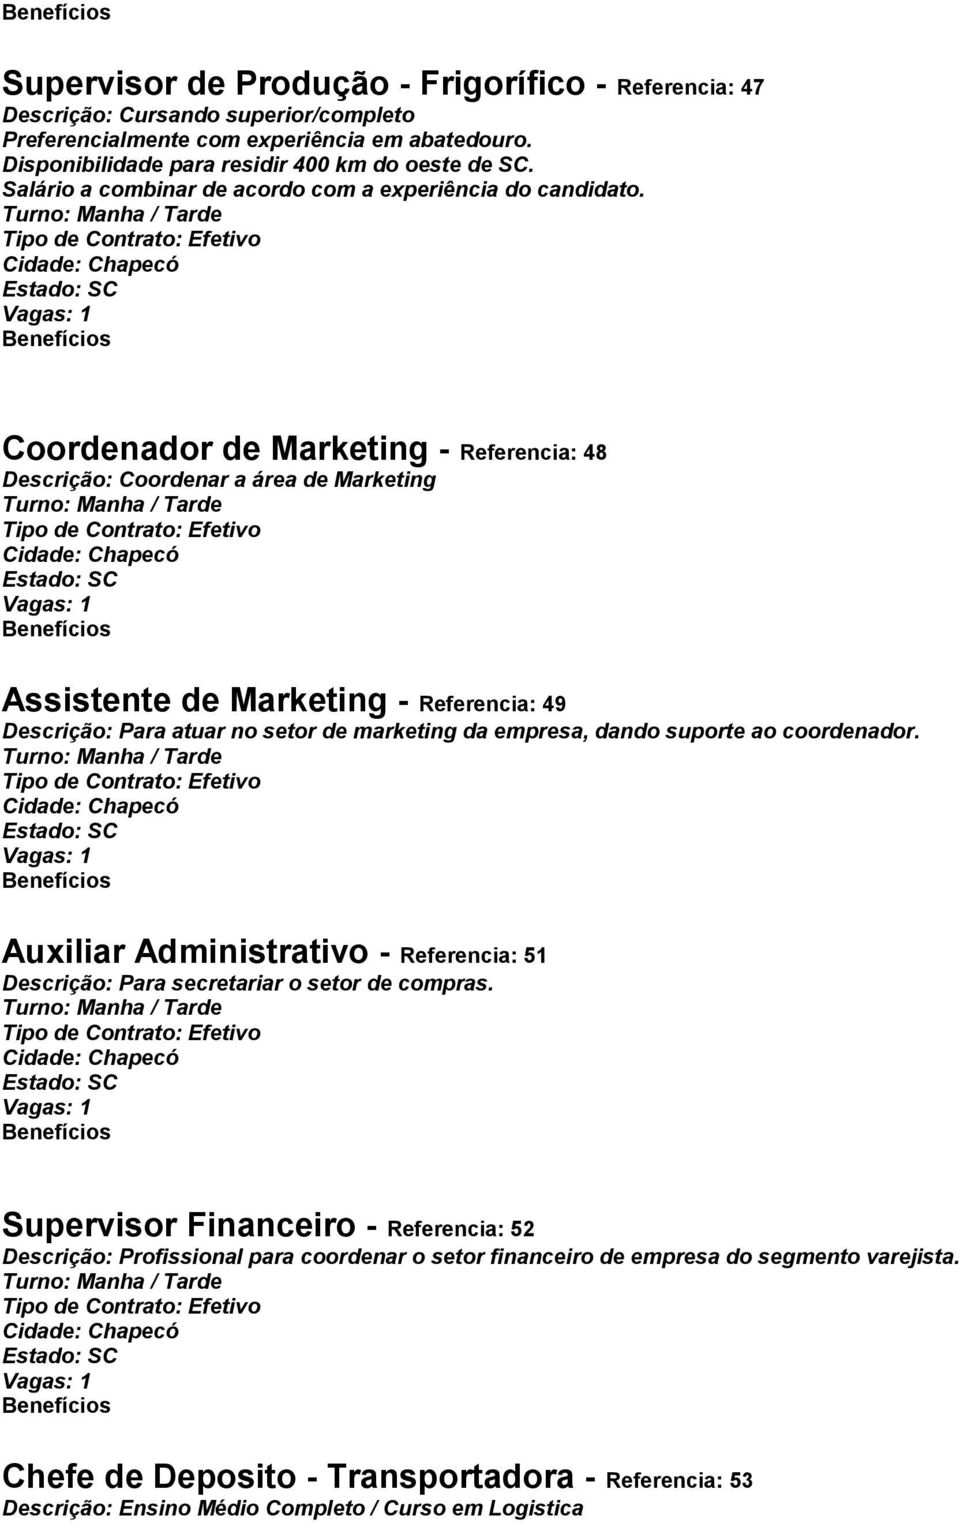 Coordenador de Marketing - Referencia: 48 Descrição: Coordenar a área de Marketing Assistente de Marketing - Referencia: 49 Descrição: Para atuar no setor de marketing da empresa,